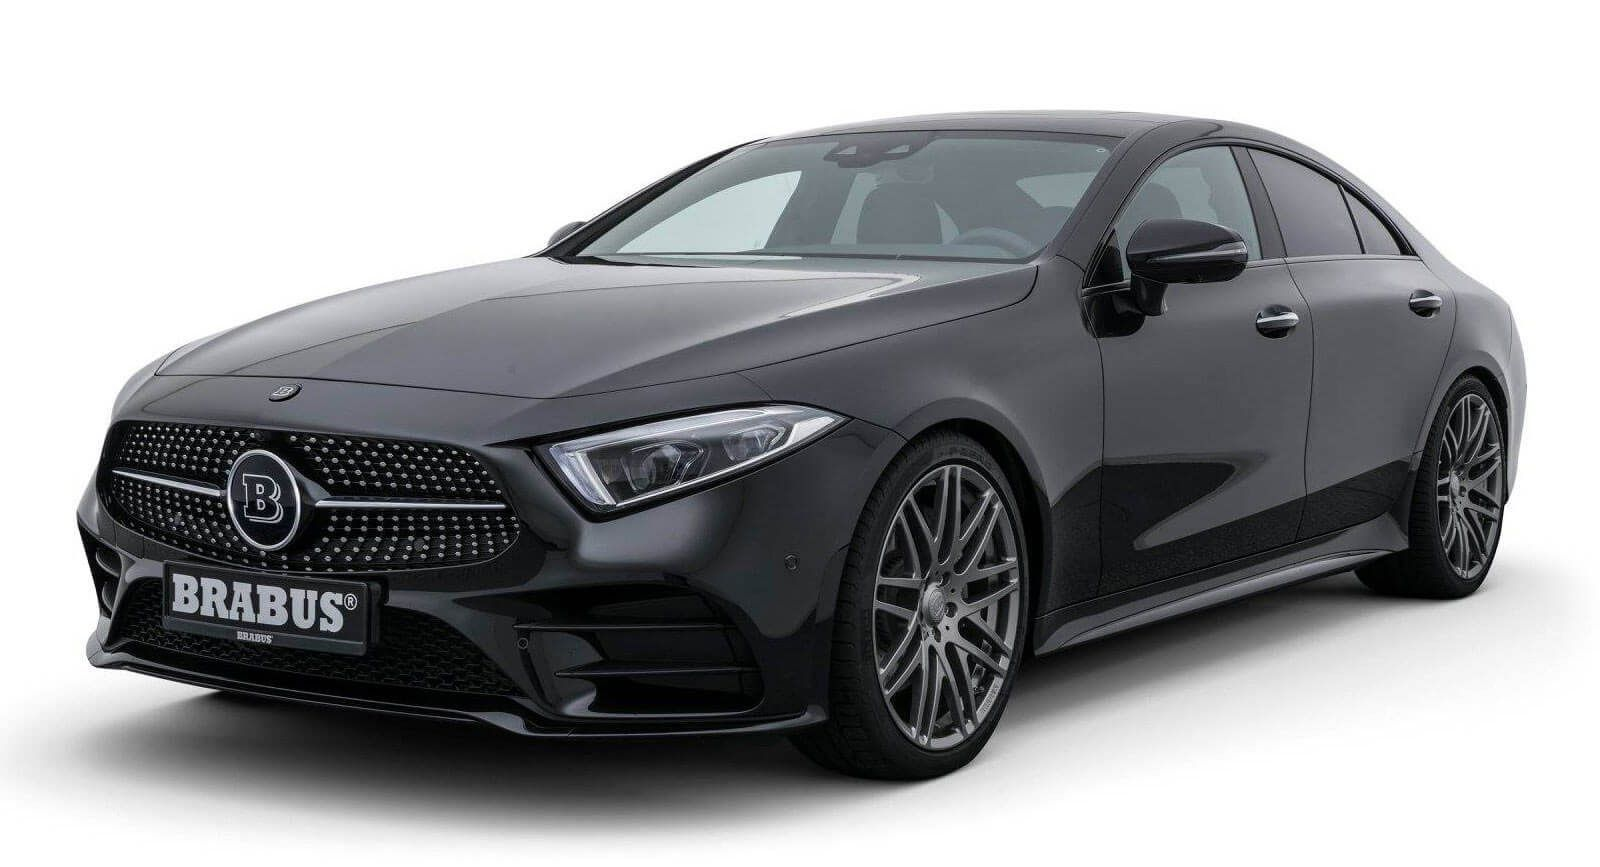 2019 Mercedes Benz Cls Gets Light Tuning Package From Brabus With